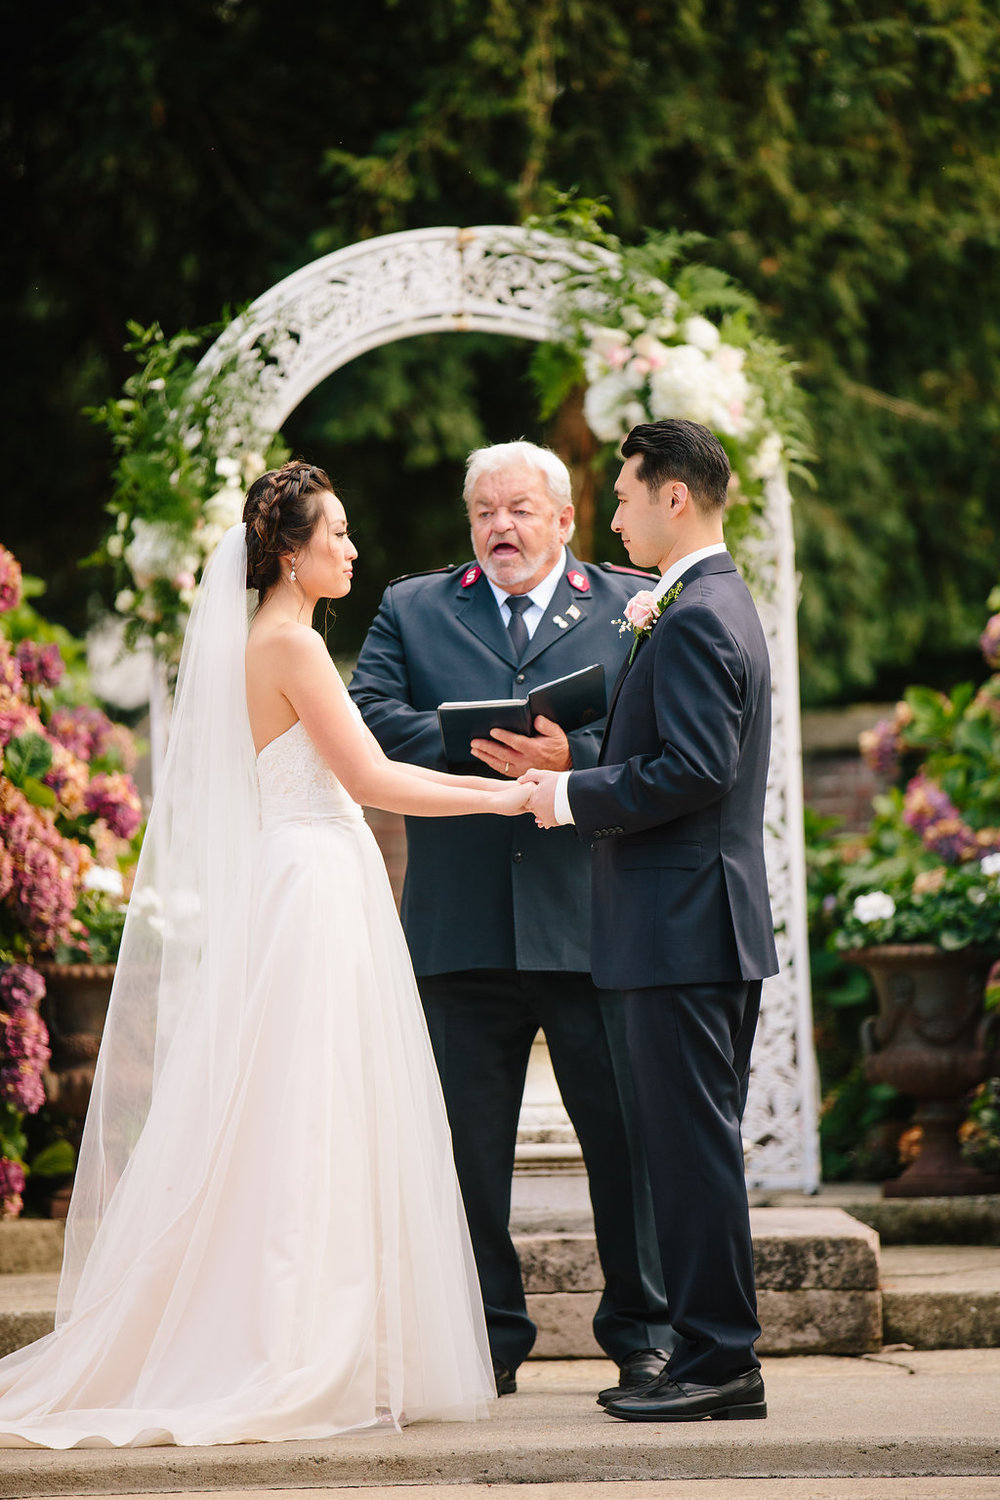 Kellylemonphotography_lucy+kento_weddingpreviews-30.jpg